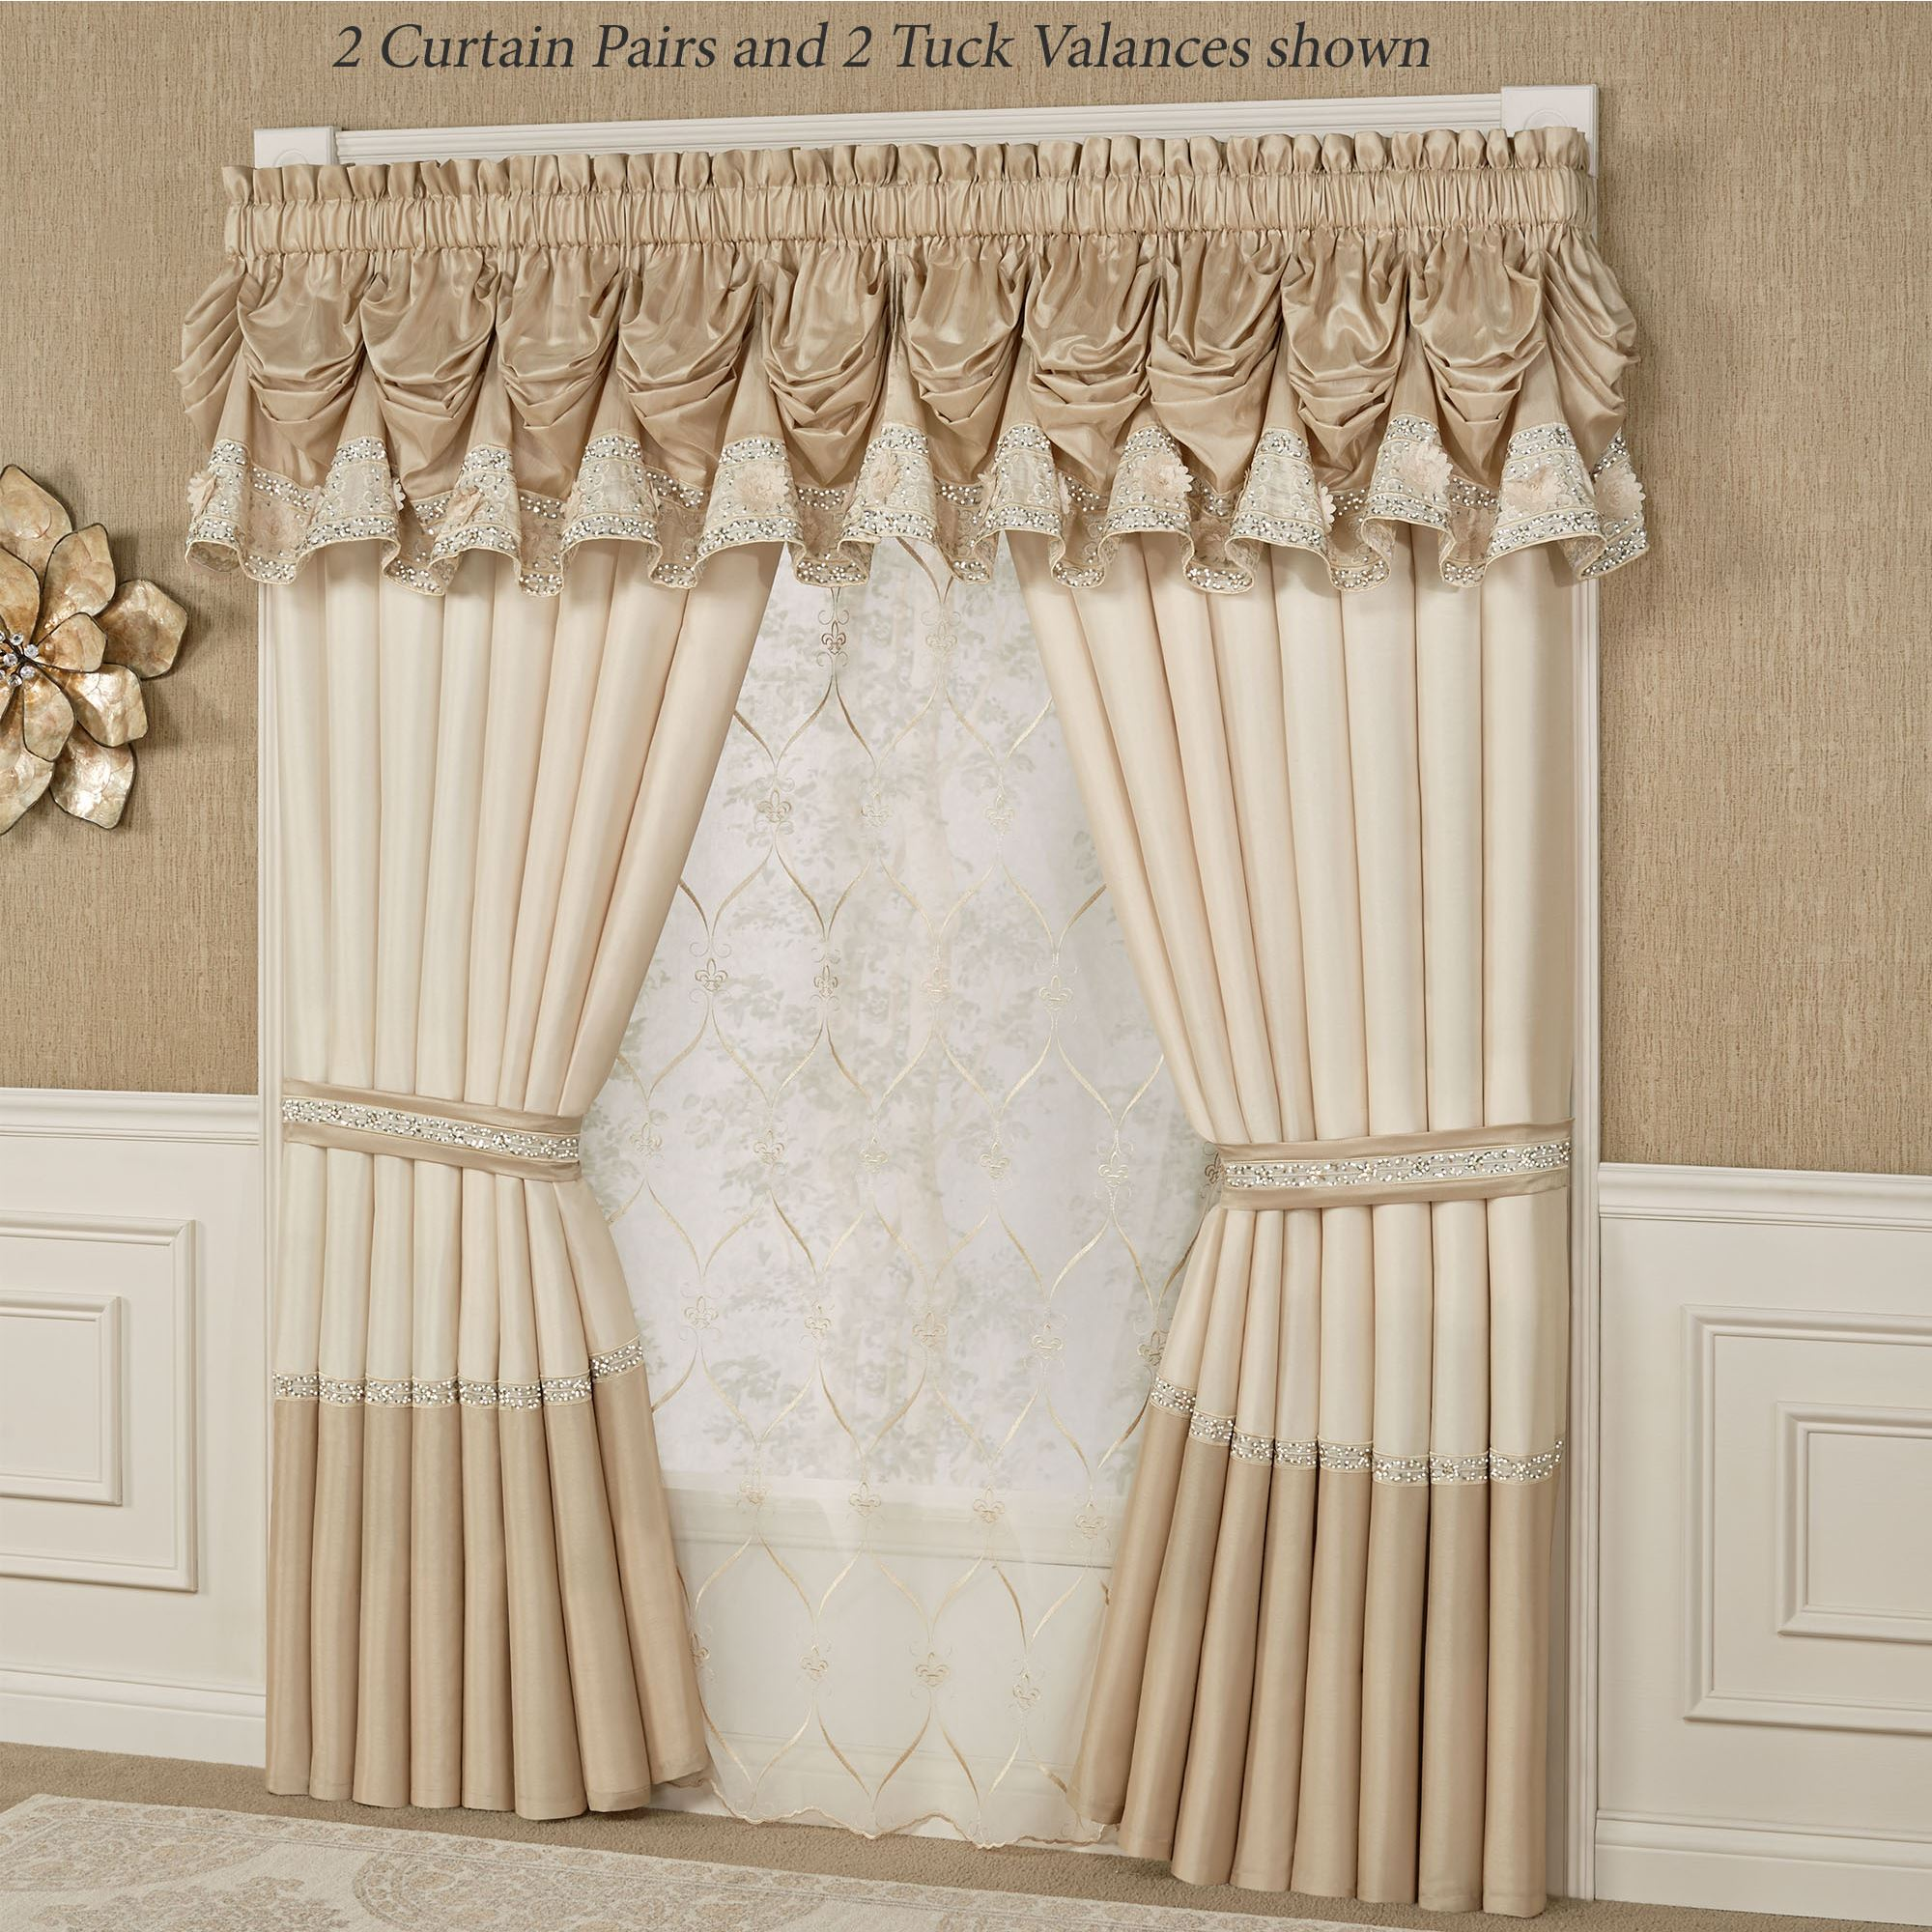 black valance curtains product country check scalloped scallop x burlap lined